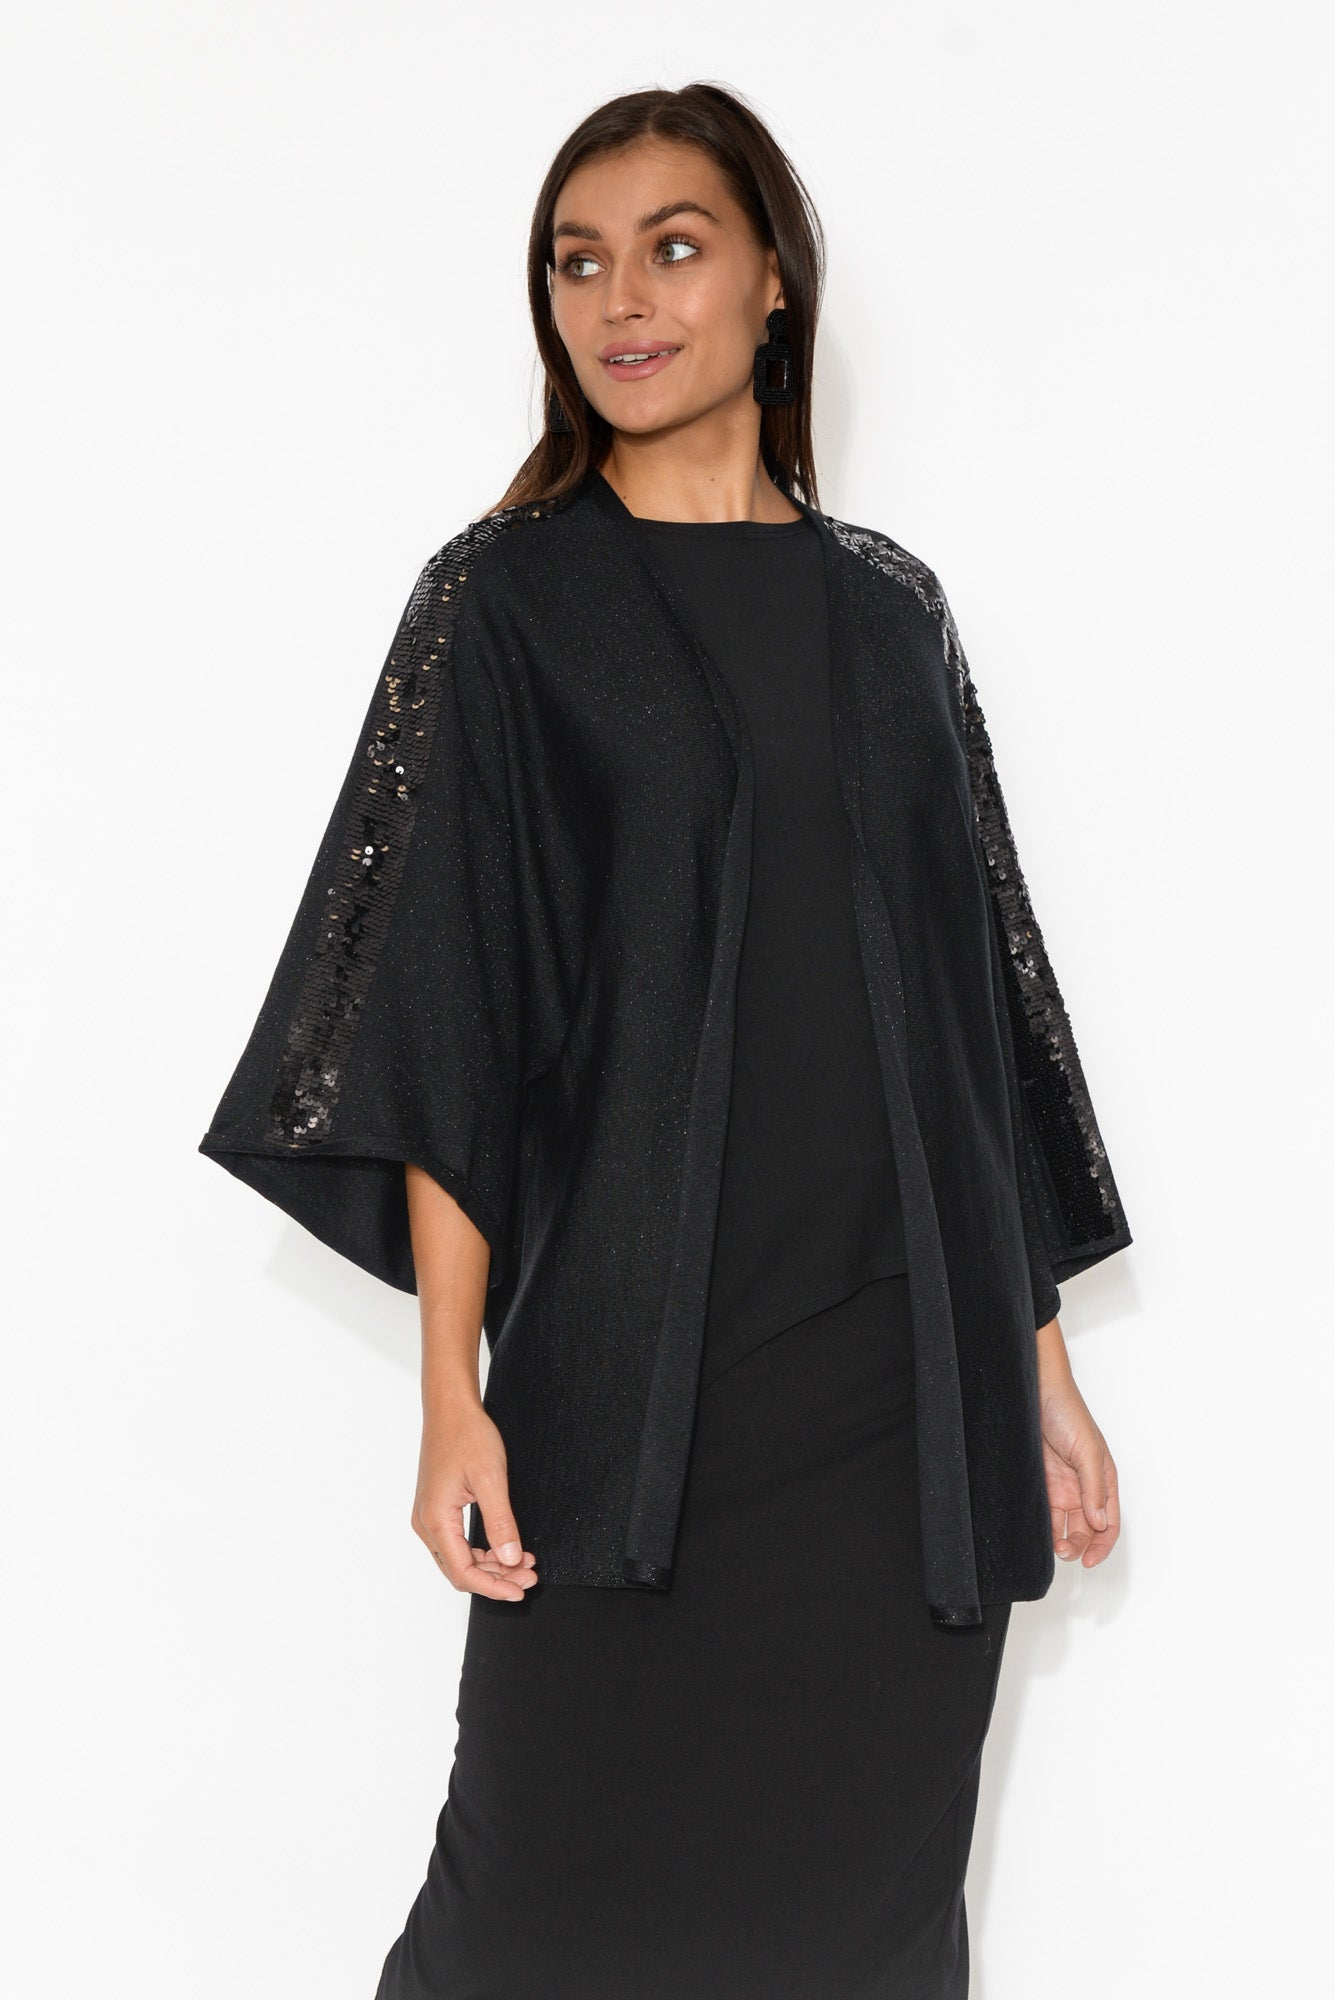 Cicely Black Sequin Cardigan